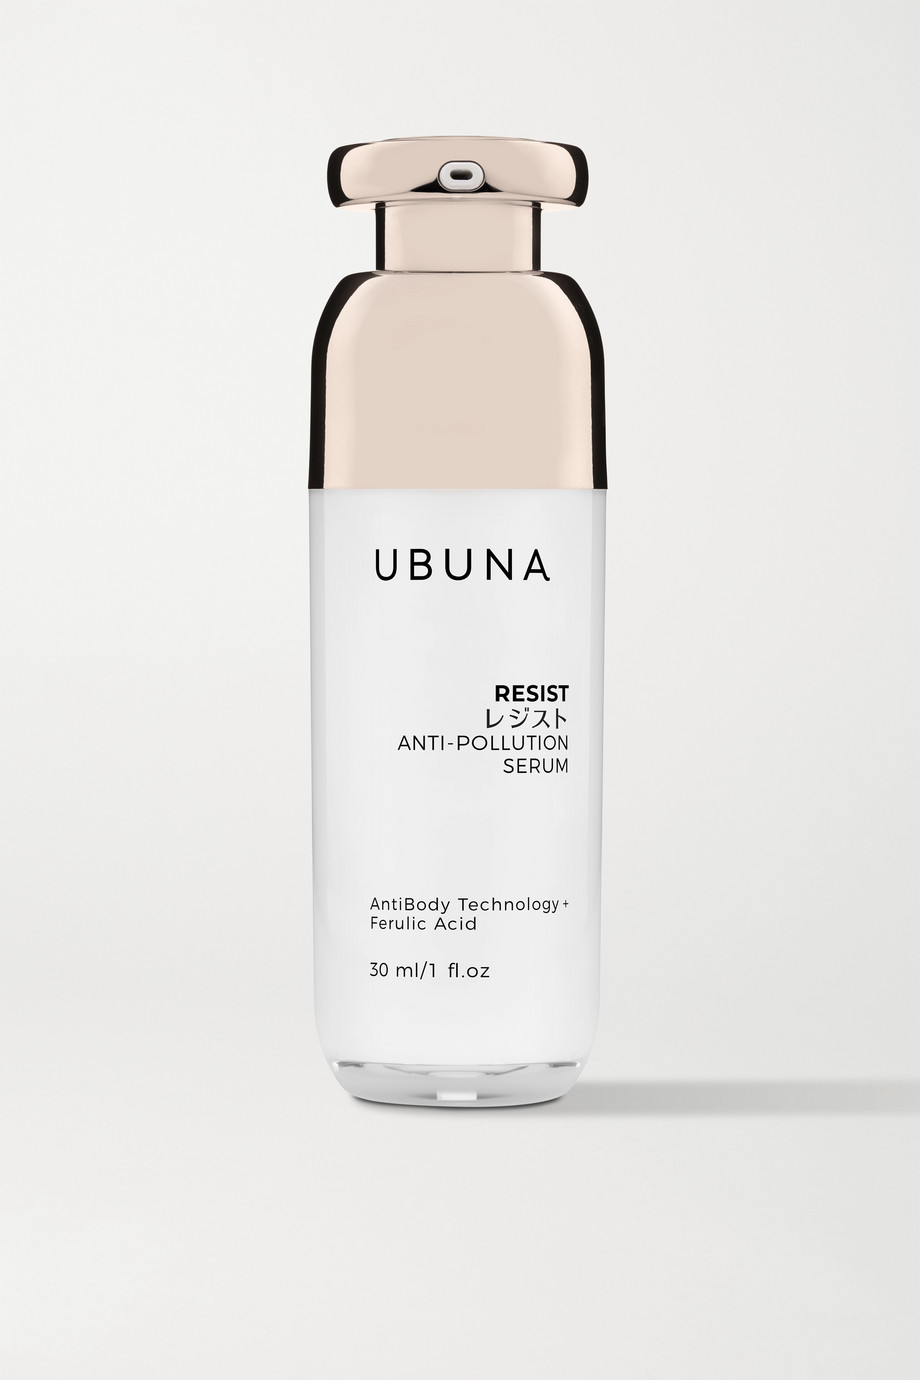 Ubuna Beauty Resist Anti-Pollution Serum, 30ml